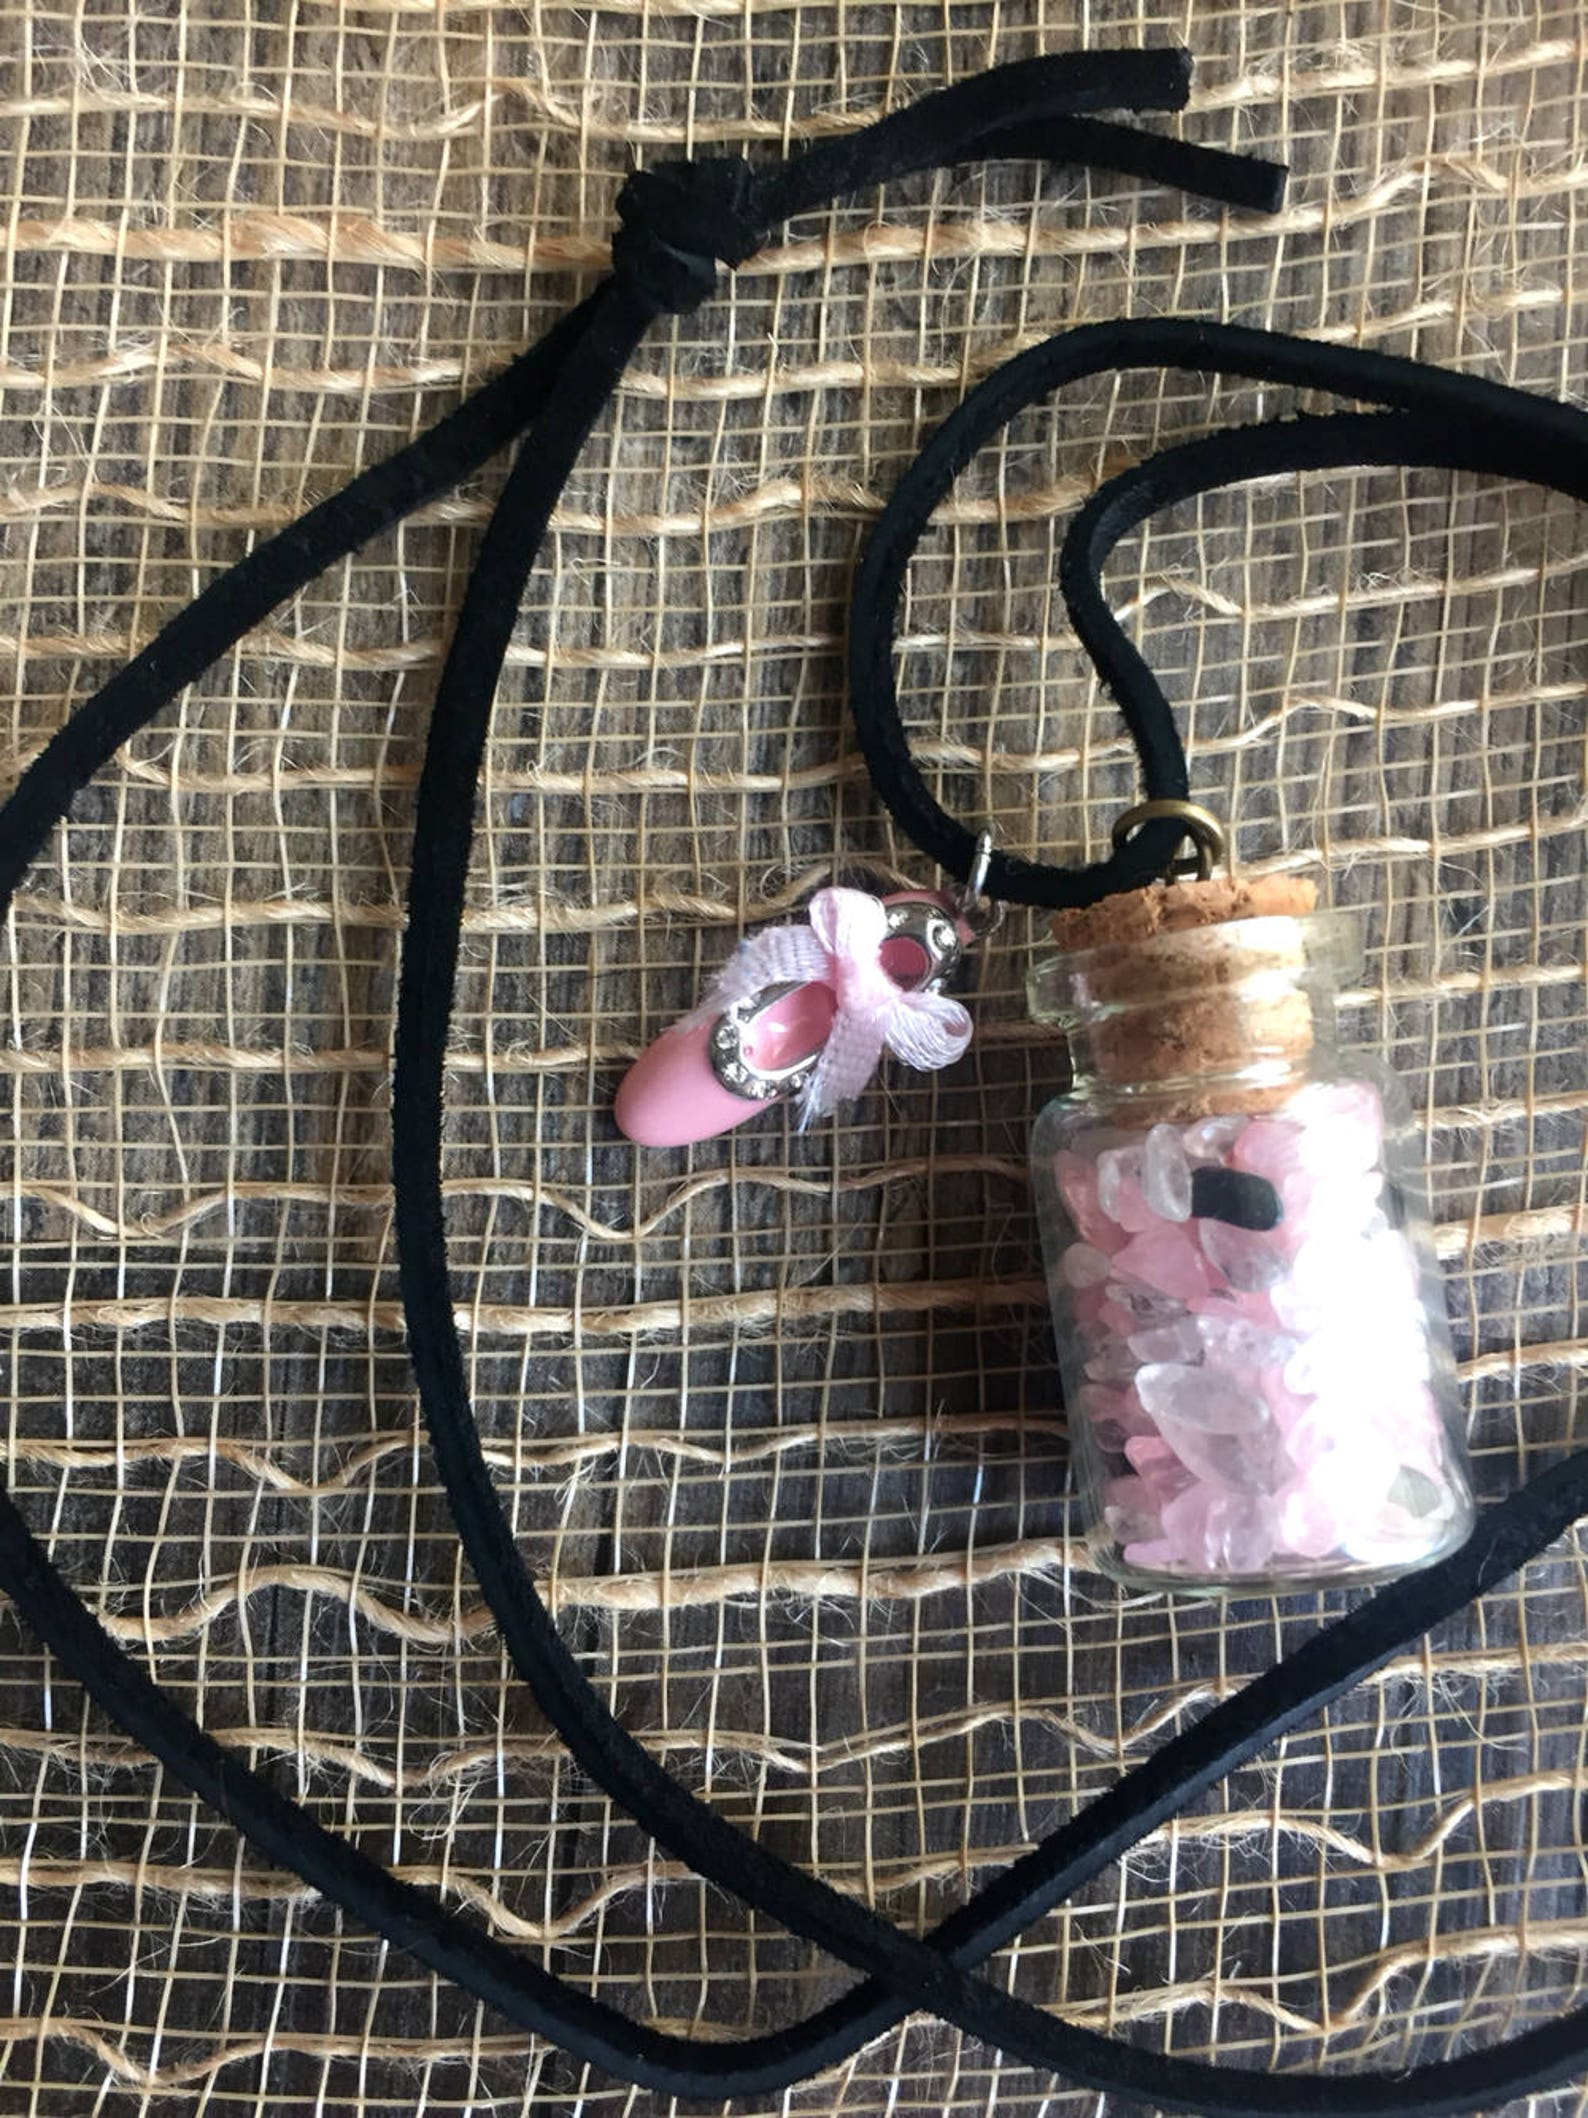 miniature tumbled stone filled jar necklace with ballet shoe charm!